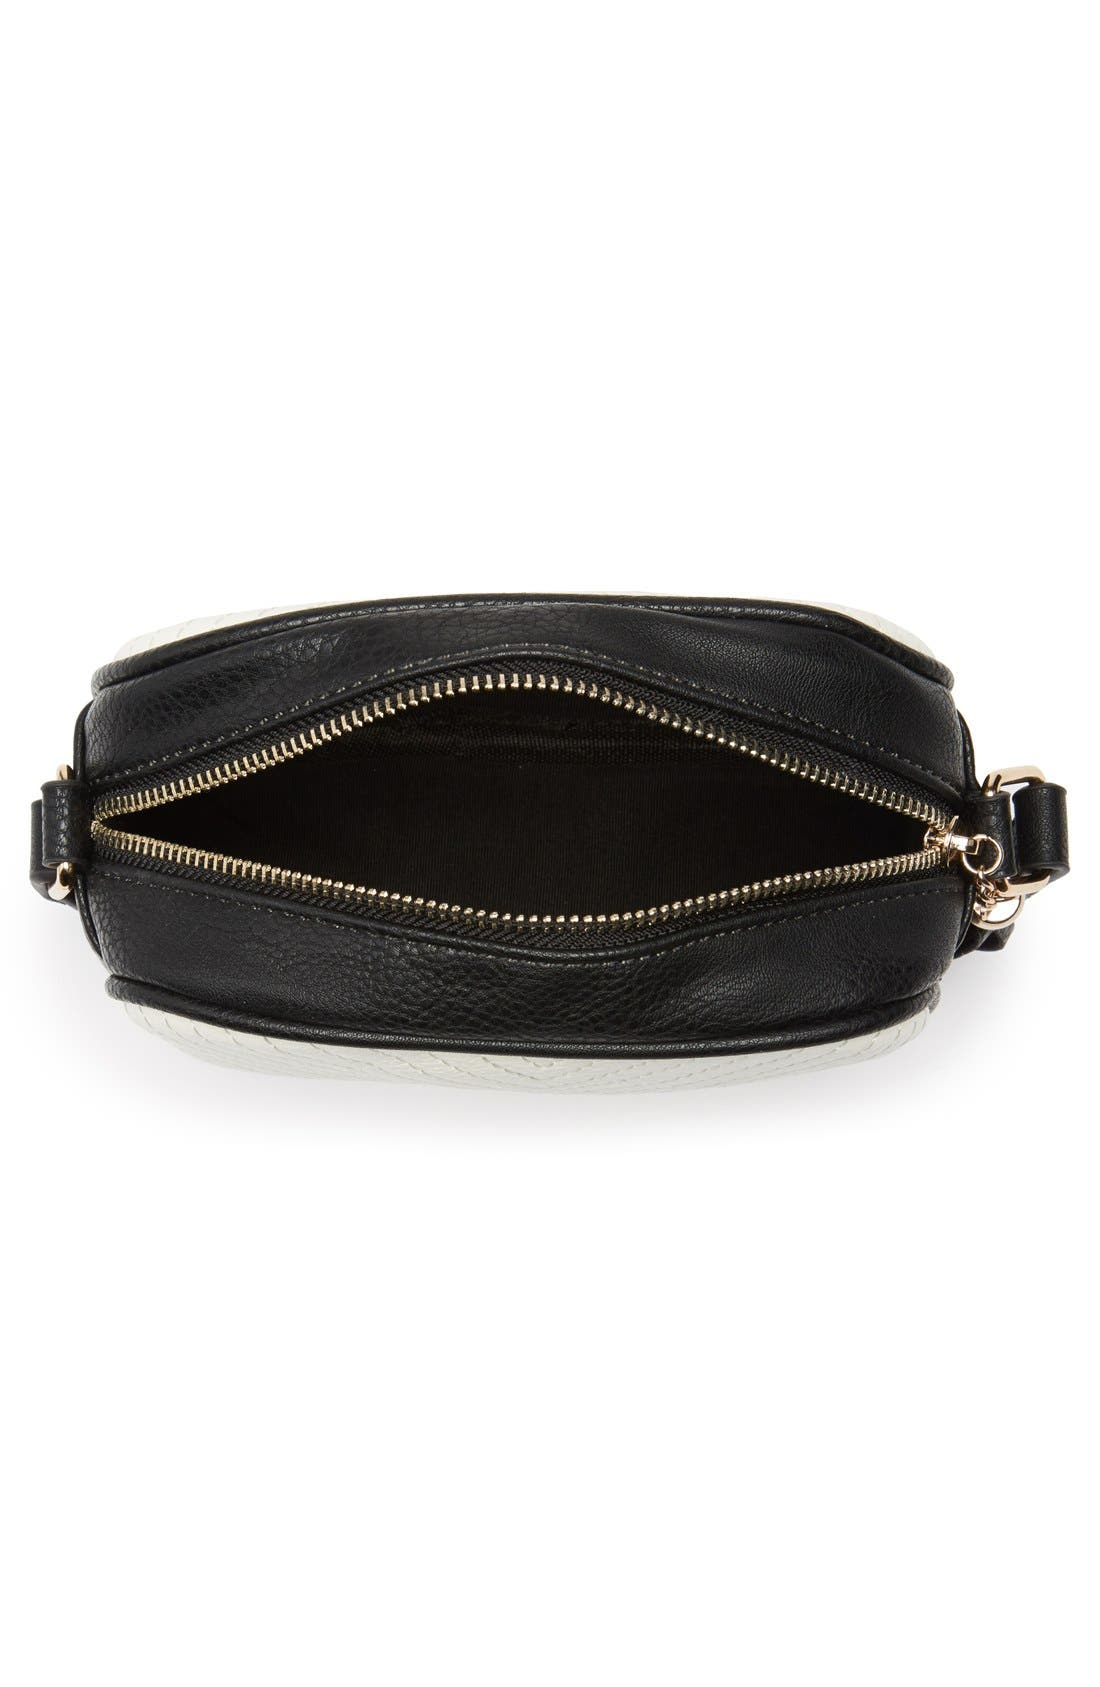 Alternate Image 3  - Street Level Tassel Crossbody Bag